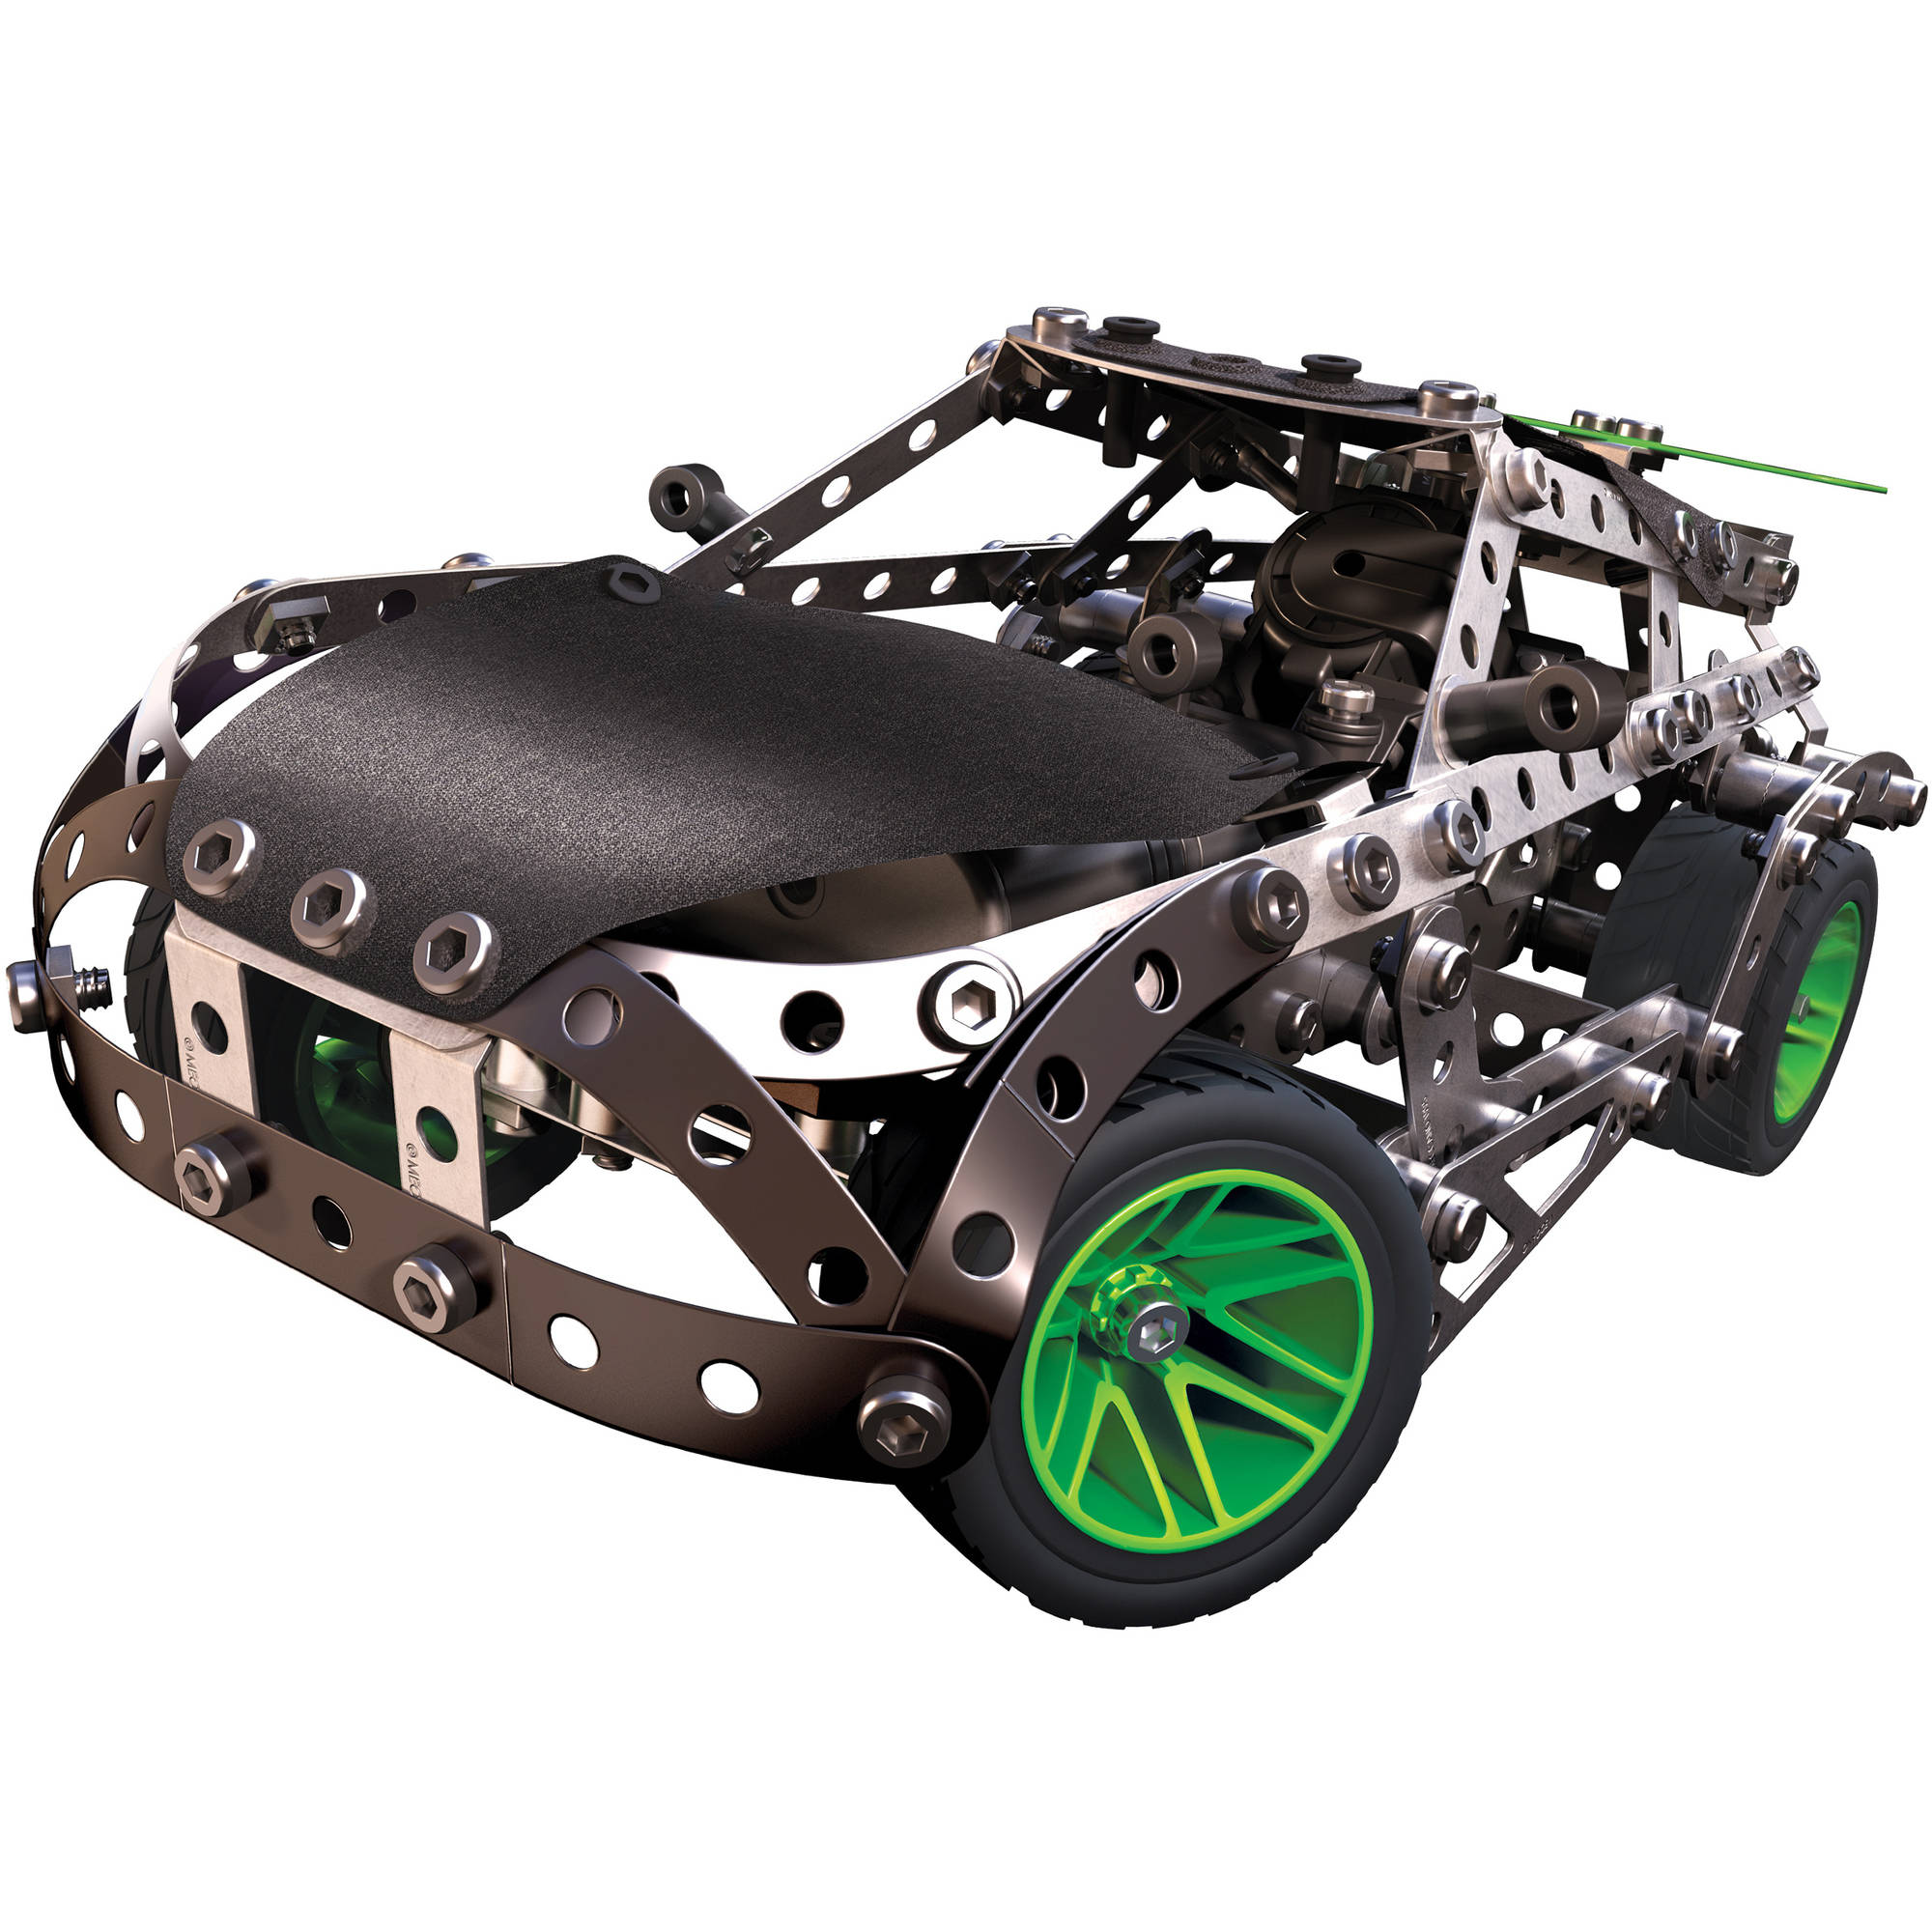 Meccano-Erector Mountain Rally, 25 Model Set